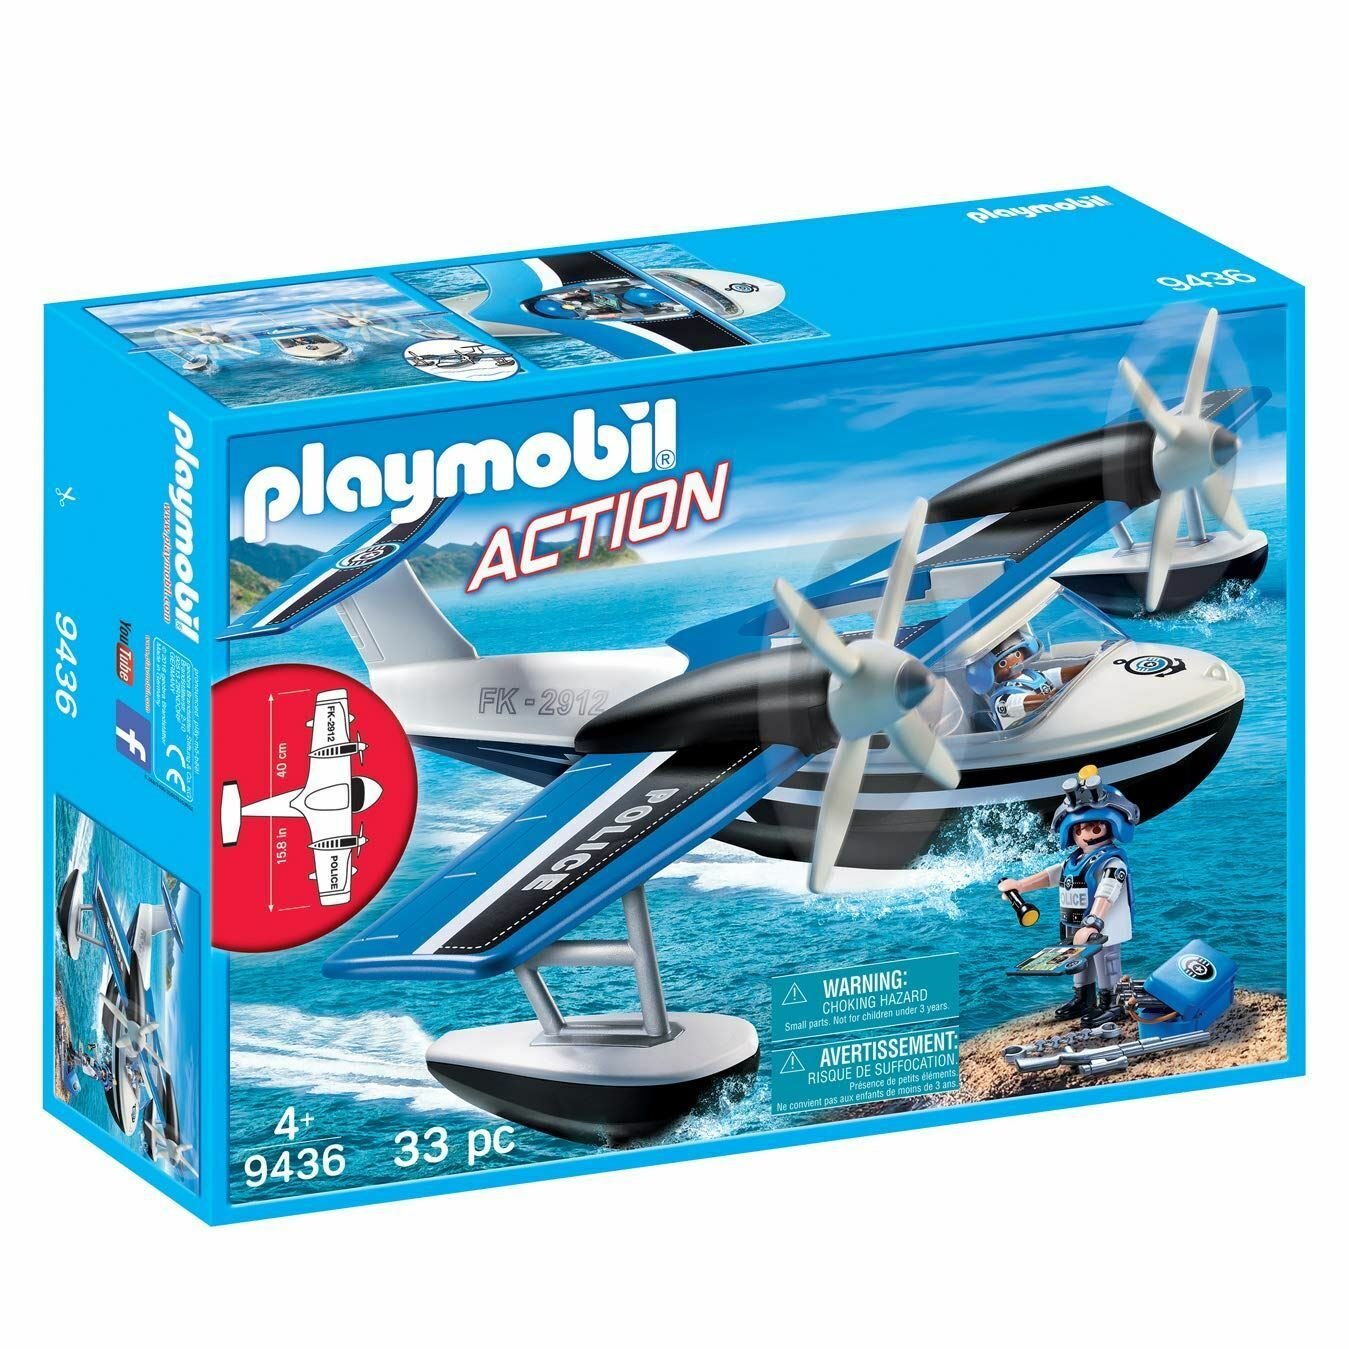 Playmobil 9436 Action Floating Police Seaplane, Various